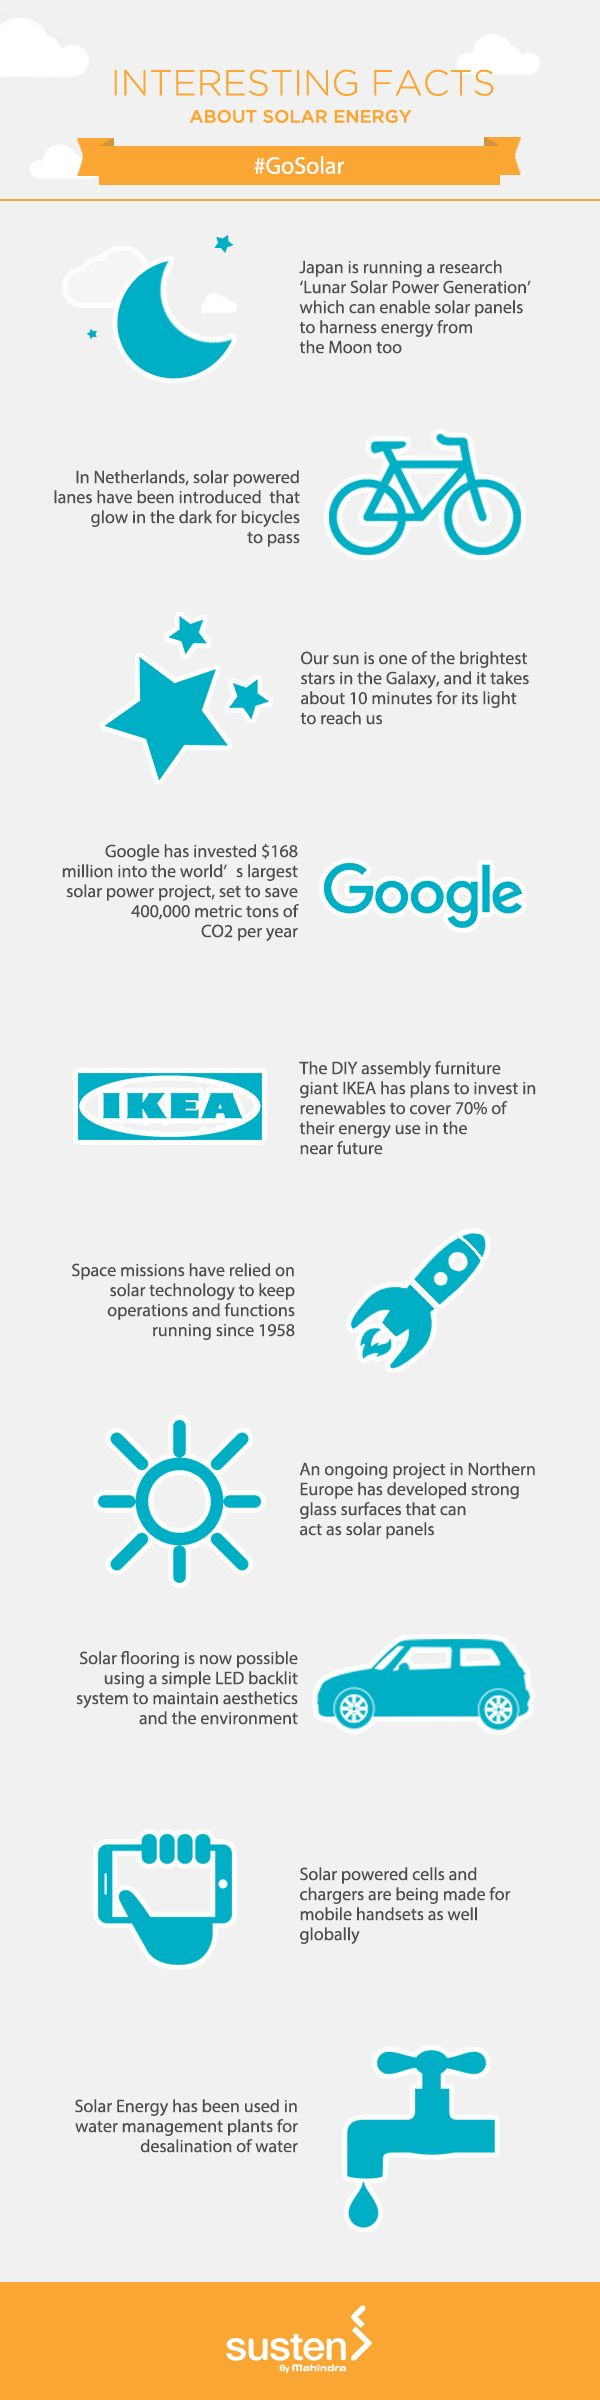 Some really interesting facts about innovative use of Solar Technology.